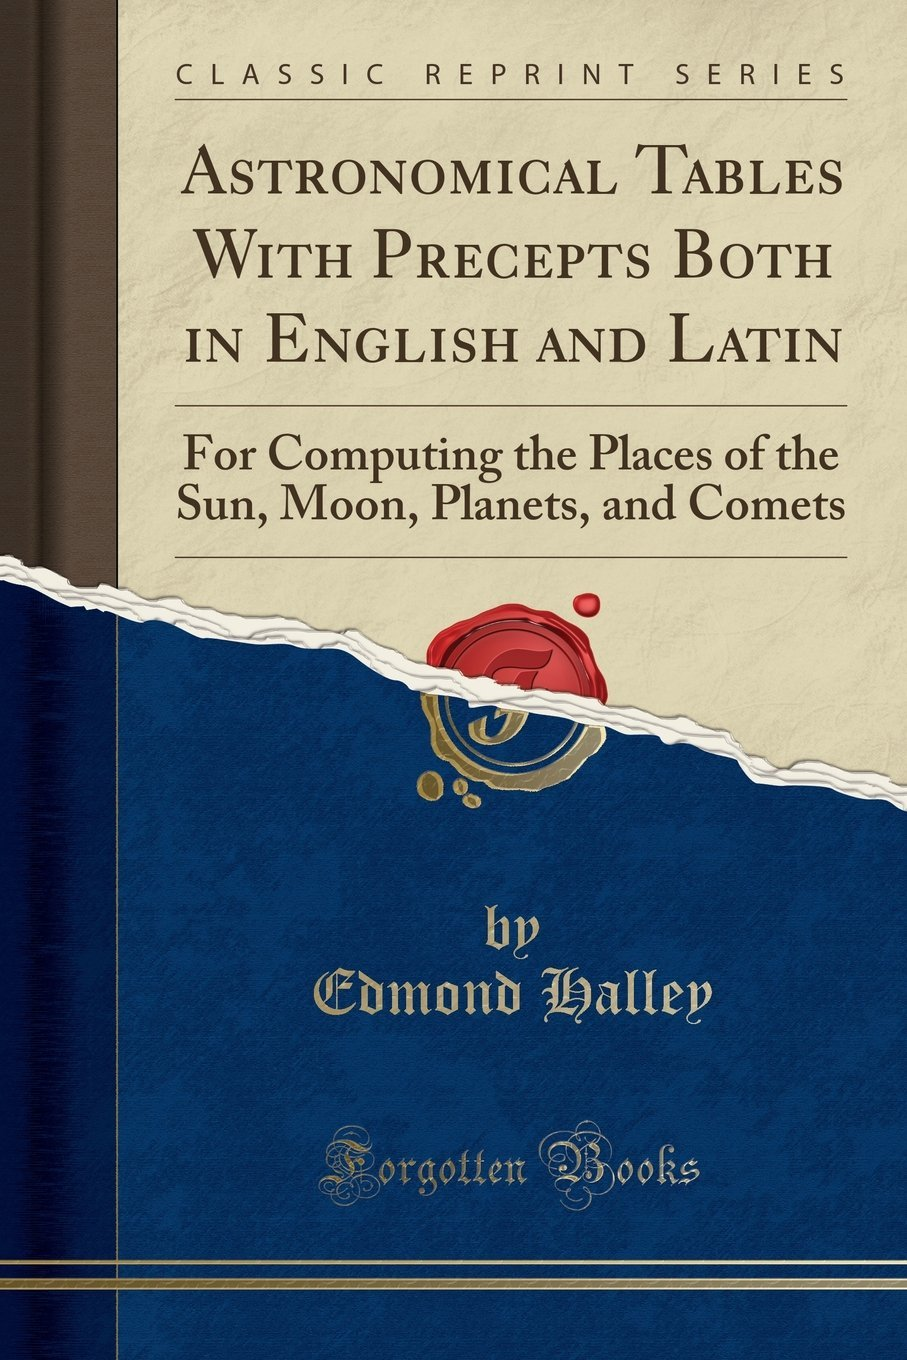 Astronomical Tables with Precepts Both in English and Latin: For Computing the Places of the Sun, Moon, Planets, and Comets (Classic Reprint) pdf epub